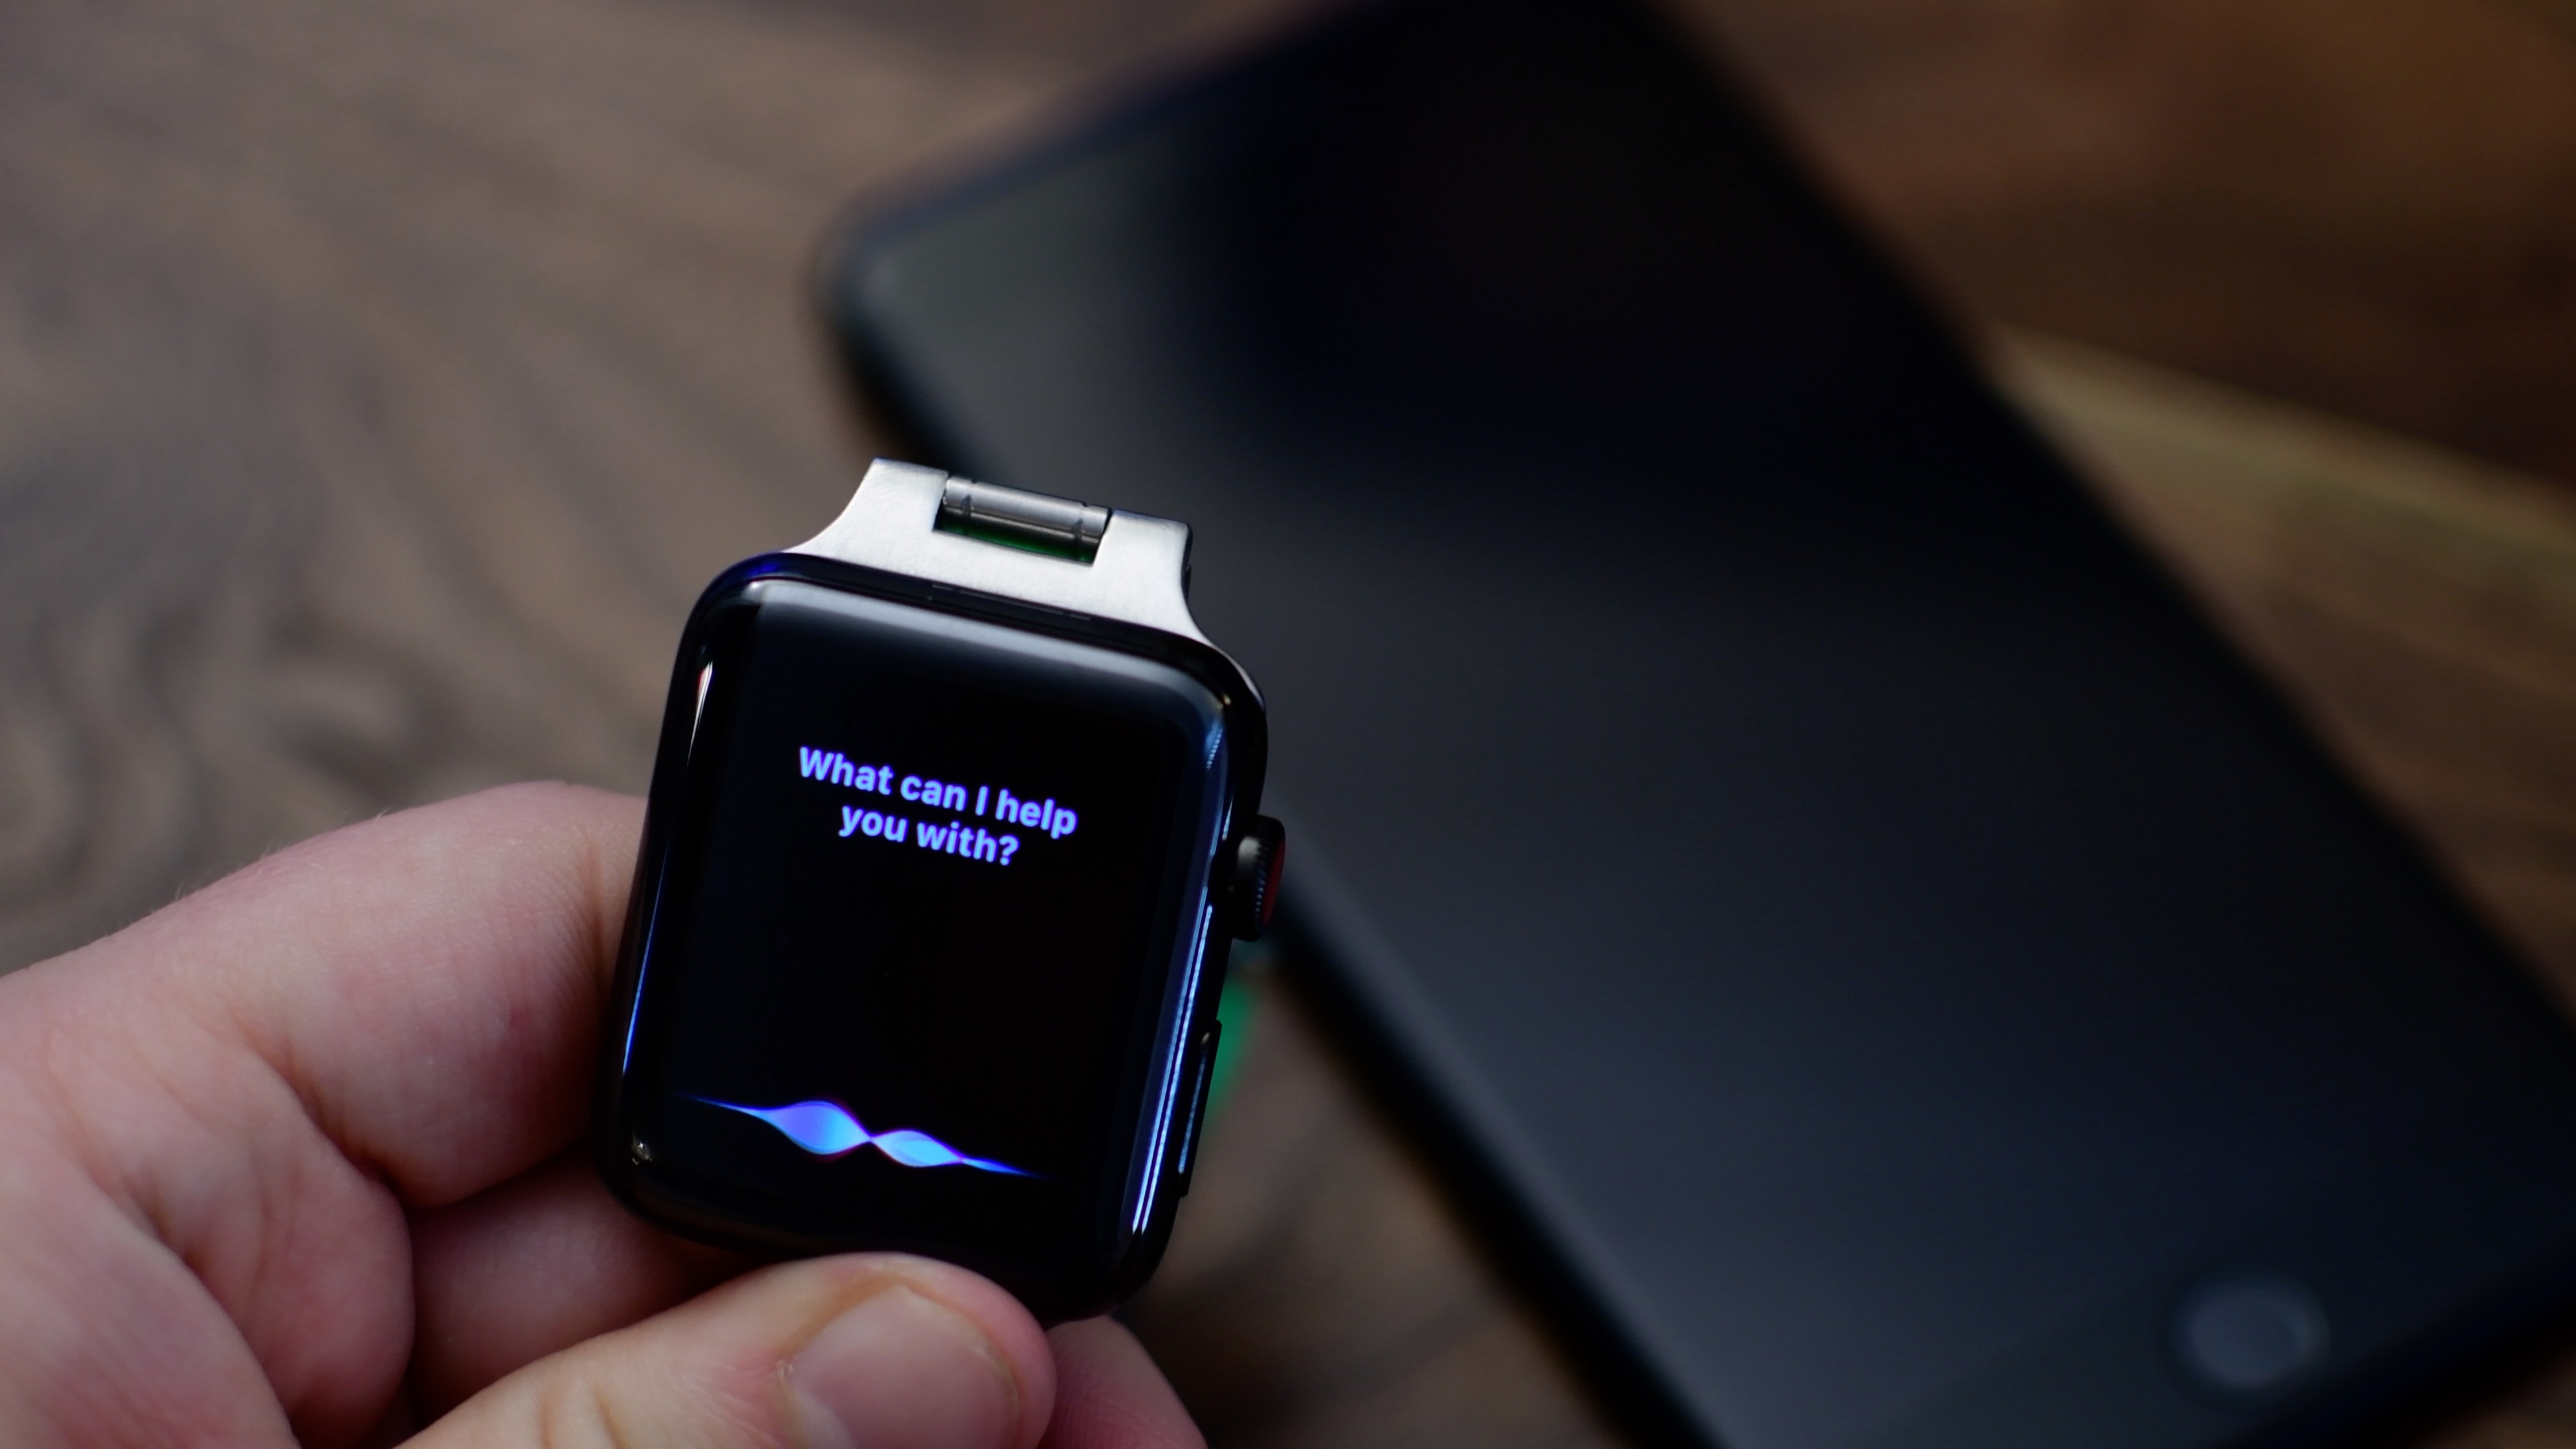 Apple Watch shown interacting with Siri. With watchOS 5, Series 3 owners can adjust the volume of Siri voice responses